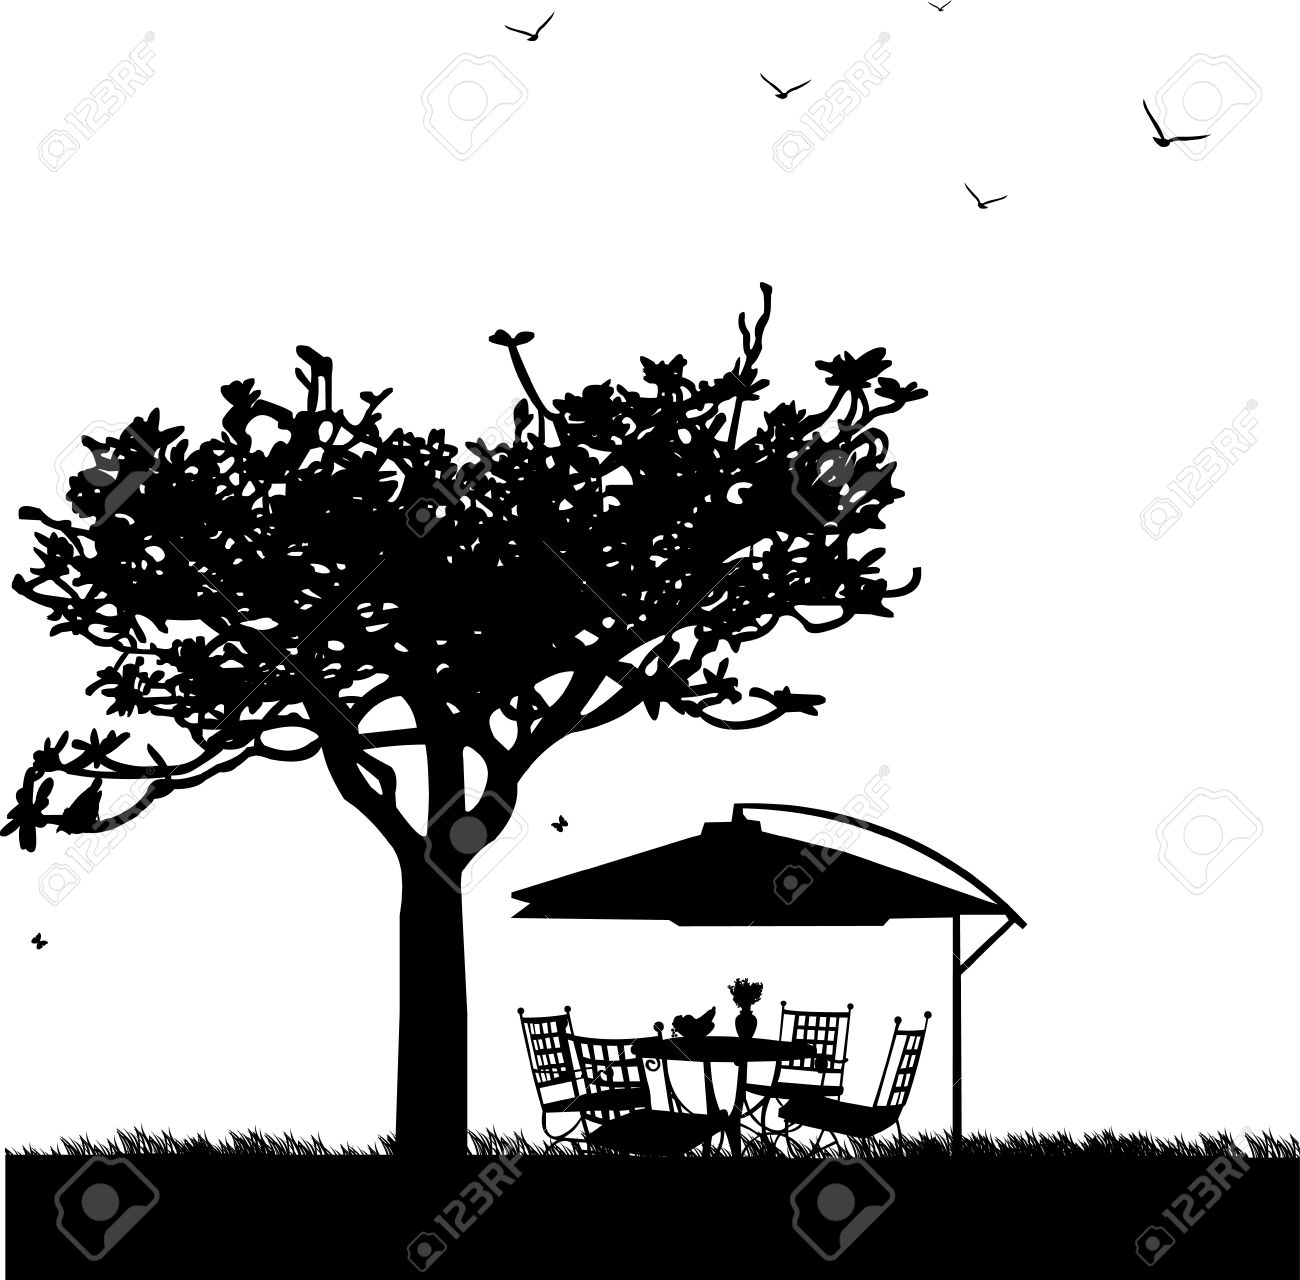 Garden furniture with bowl of fruit, bouquet hyacinths in vase and parasol in garden silhouette, one in the series of similar images Stock Vector - 13146849